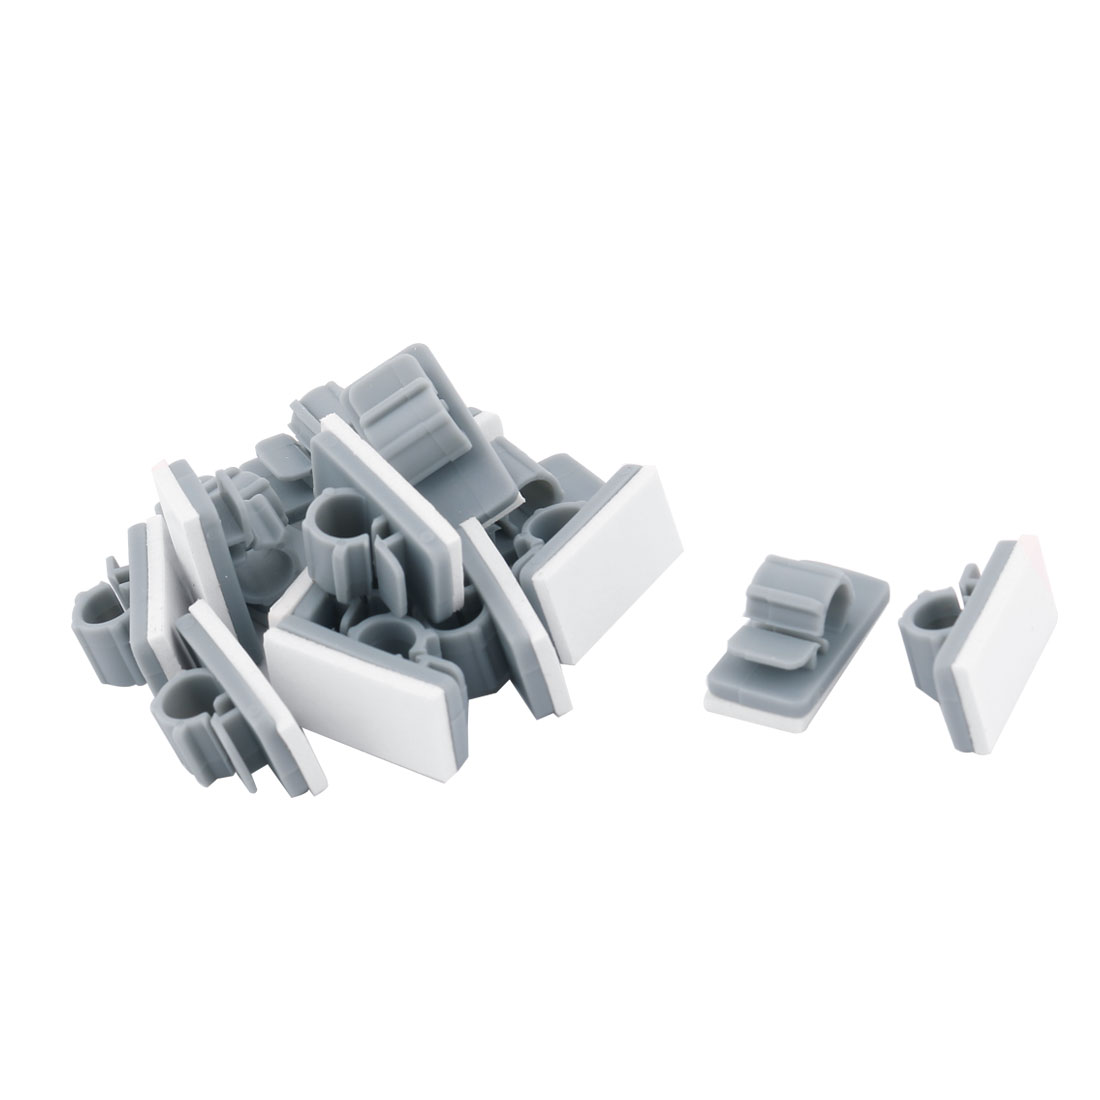 Offices Shops Plastic Paste Strap Wire Cable Fixer Saddle Clip Fastener Gray 15pcs